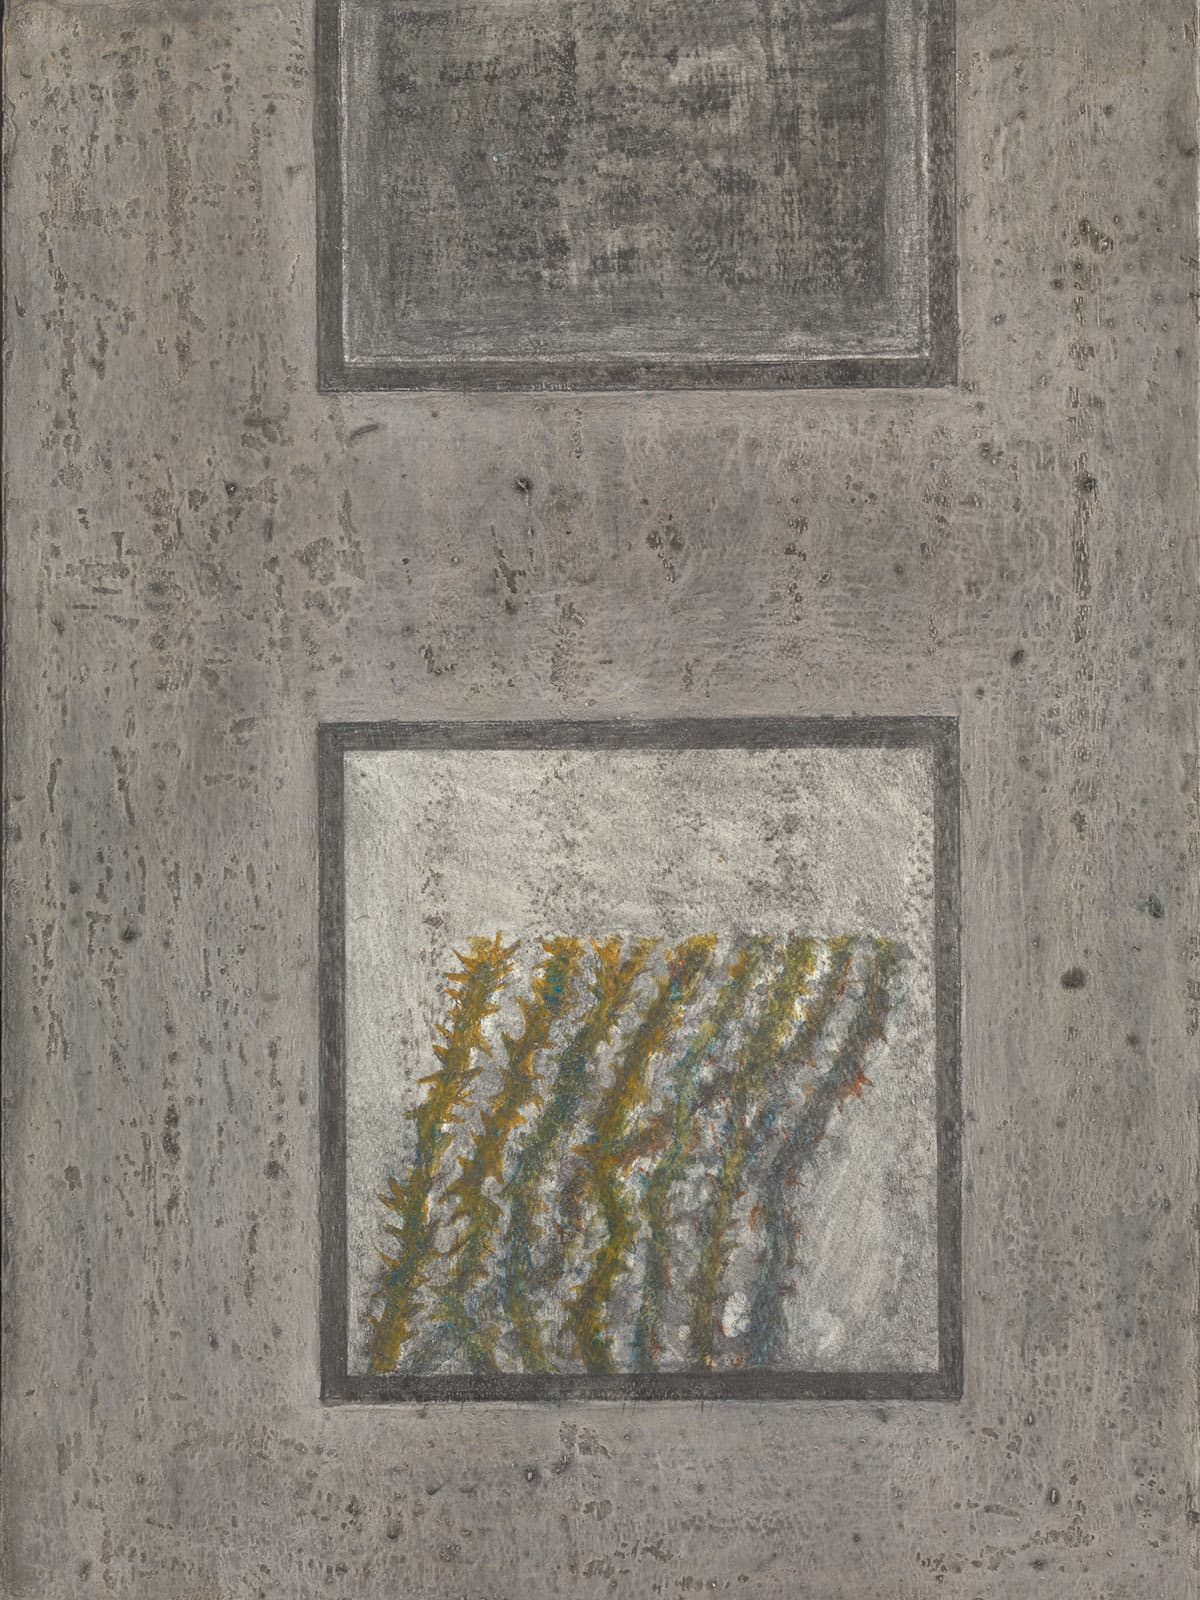 Untitled, 1992–3, acrylic paint on wood, by Zahoor ul Akhlaq | © Estate of Zahoor ul Akhlaq, Courtesy Tate, London. (Purchased with funds provided by the South Asia Acquisitions Committee 2015)